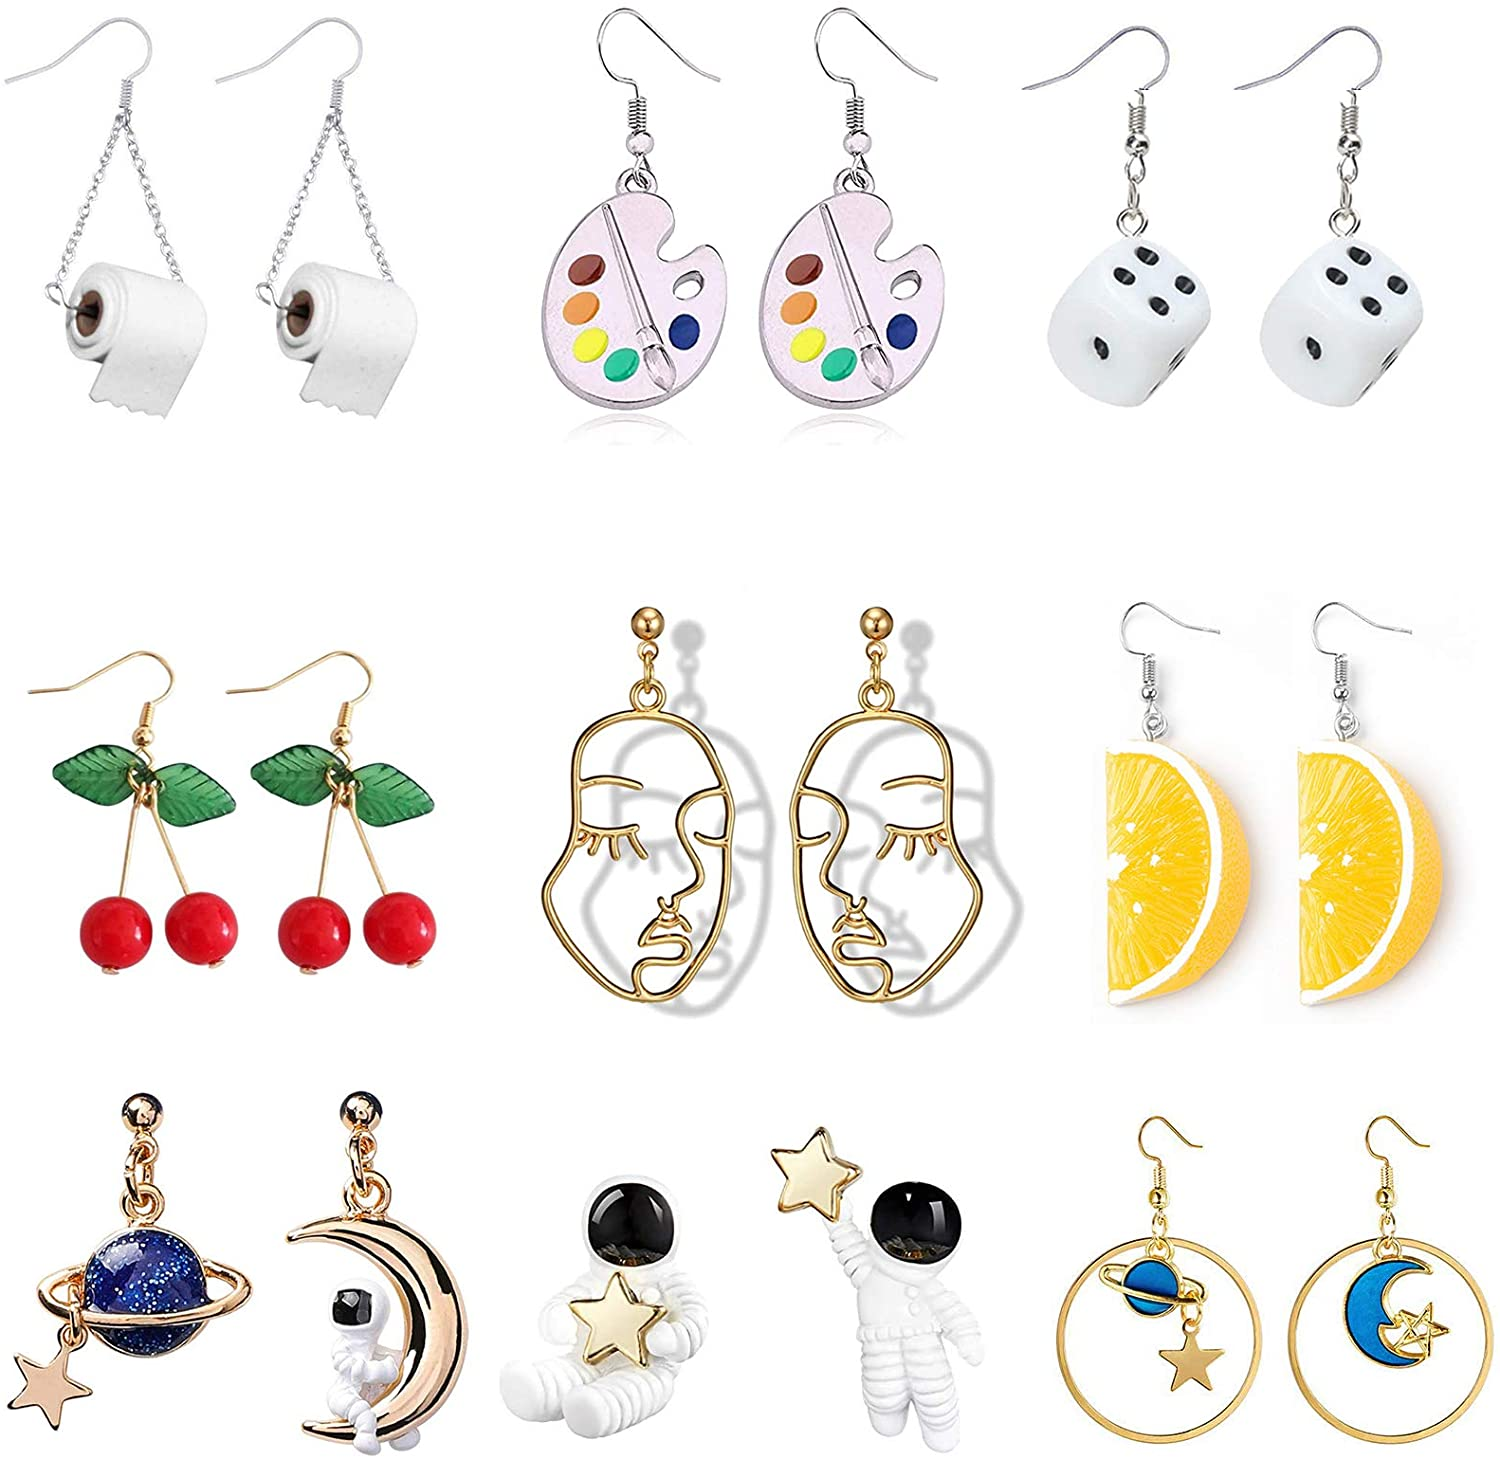 9 Pairs Cute Funny Earrings Toilet Paper Dice Earrings Cherry Face Orange Universe Planet Astronaut Earrings for Girls Women